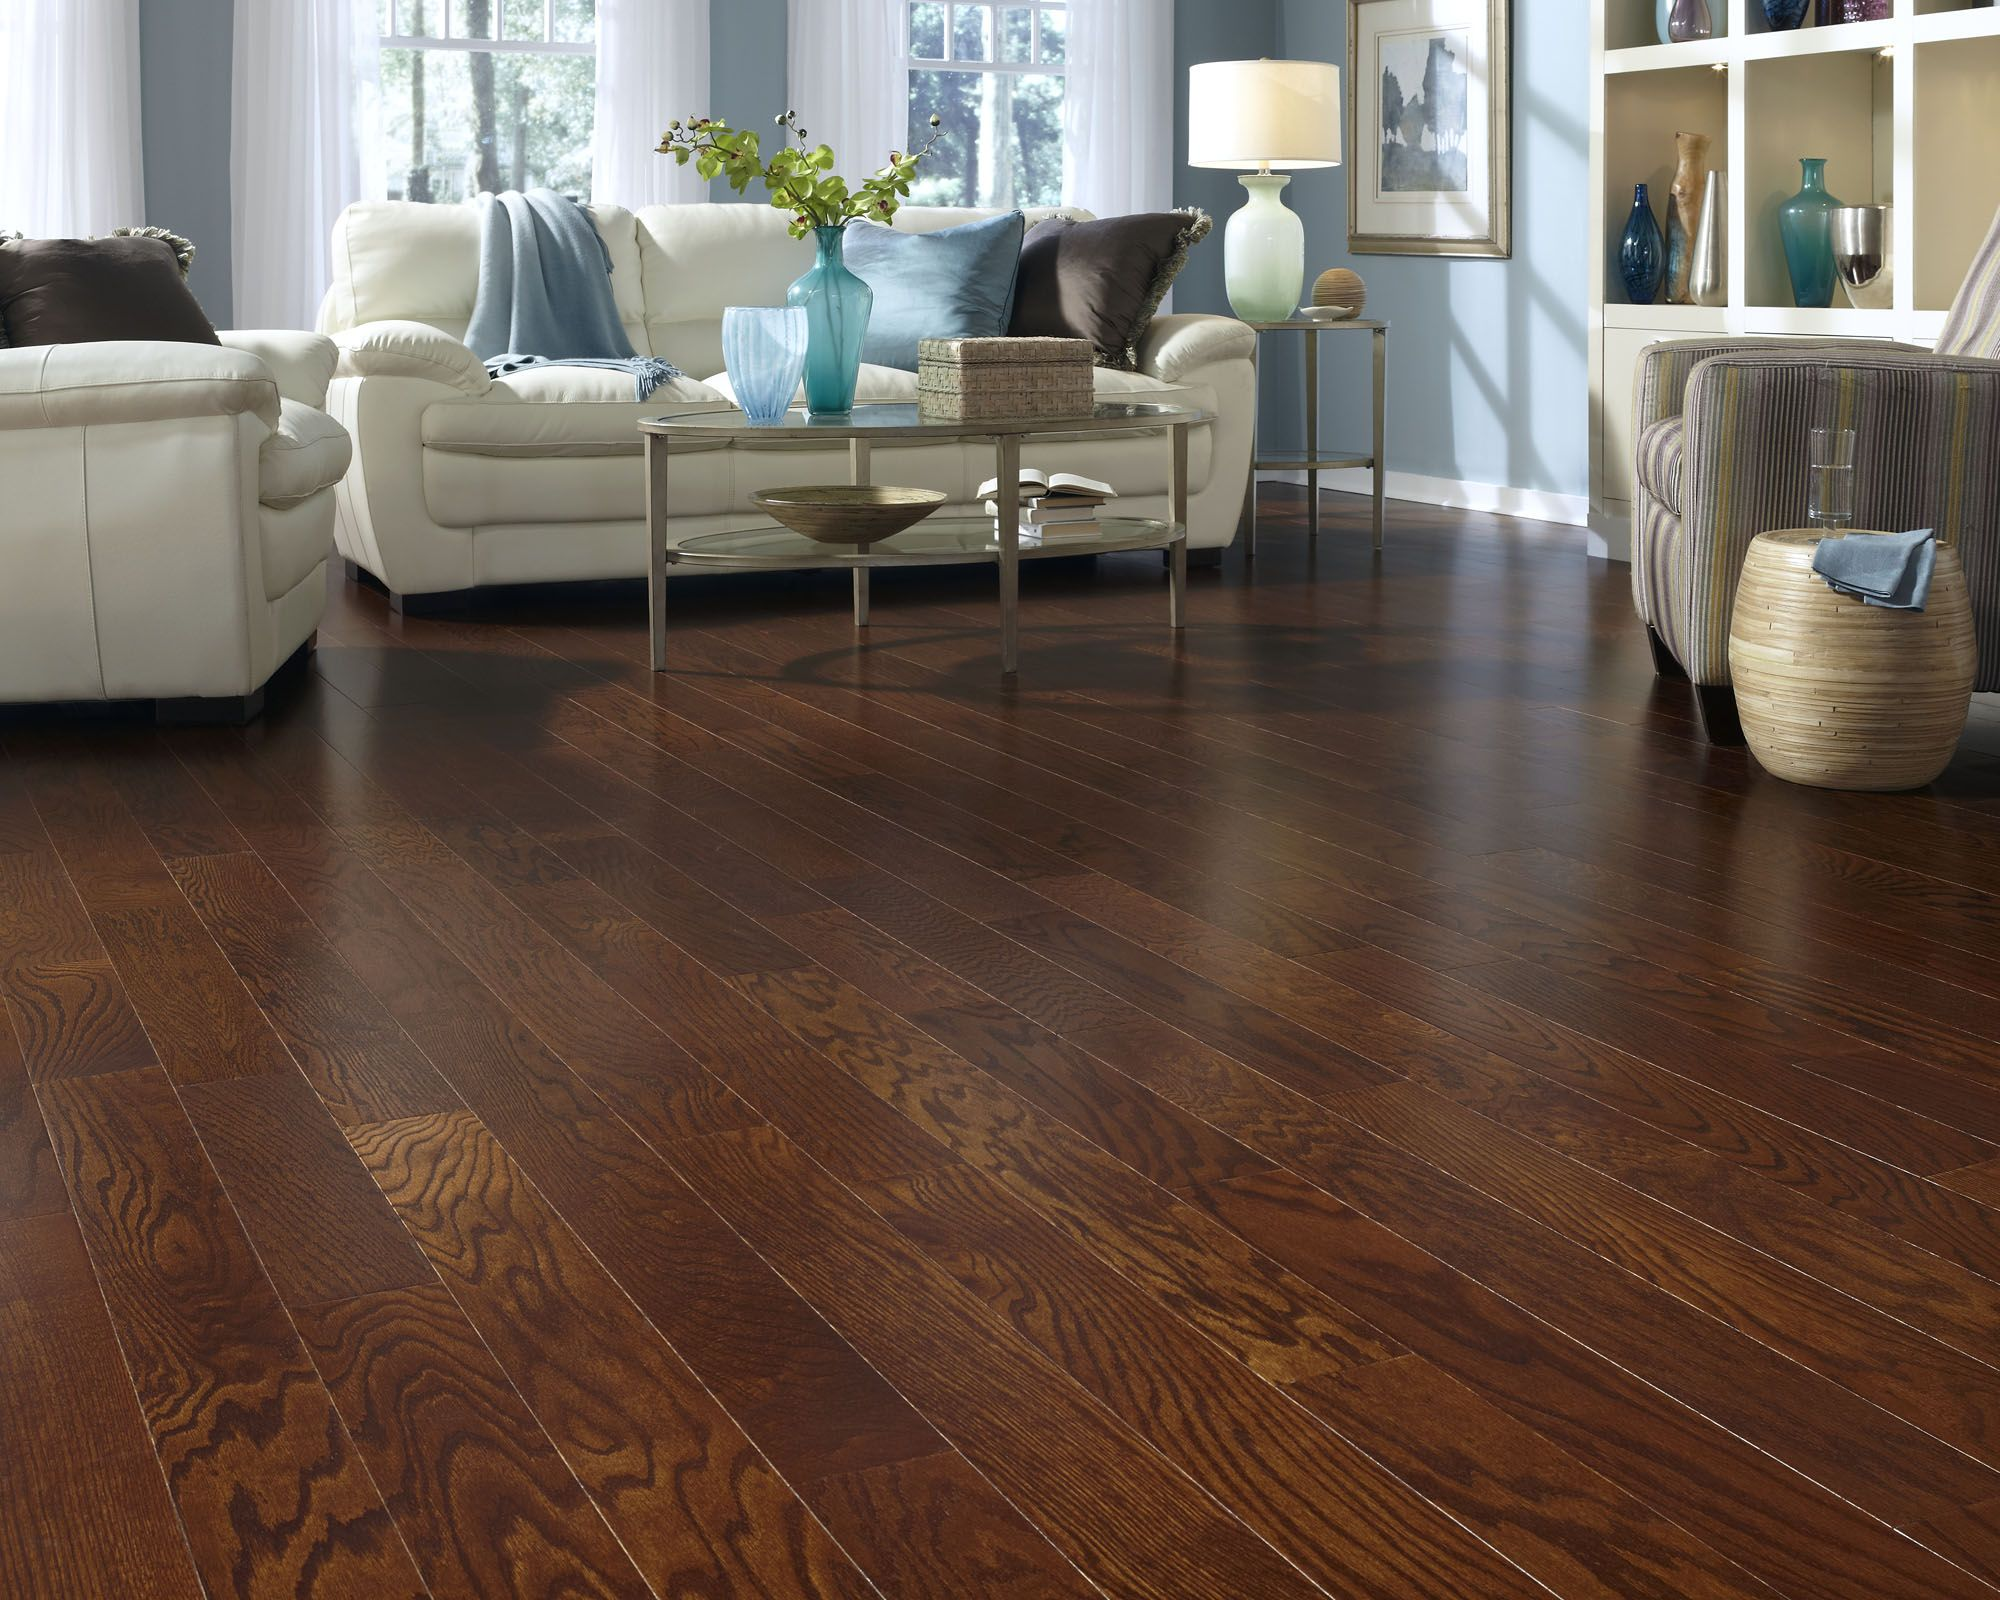 Hermitage Red Oak A Schon Quick Click Floor Floors